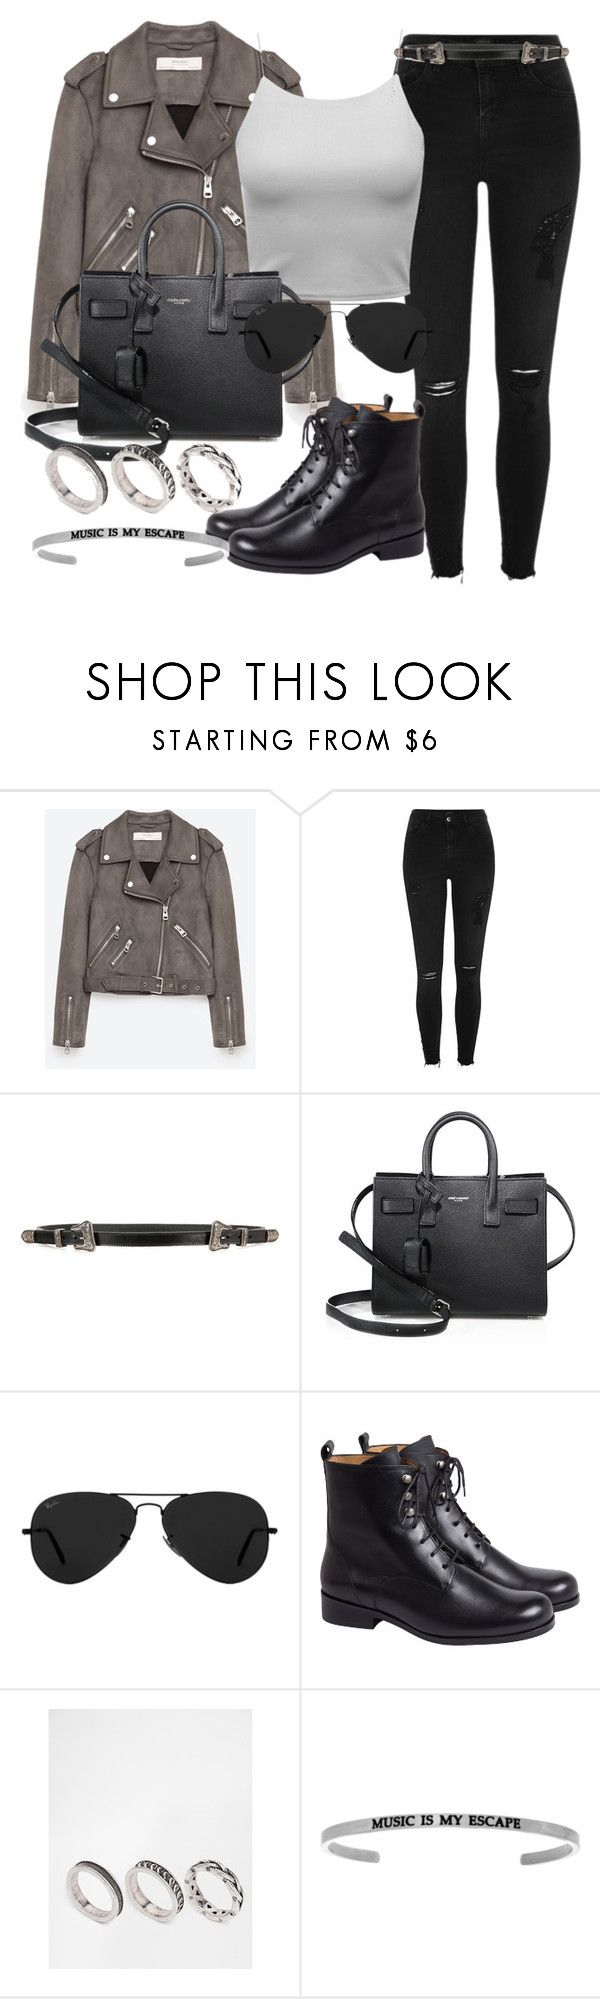 """""""Style #11648"""" by vany-alvarado ❤ liked on Polyvore featuring Jakke, River Island, Yves Saint Laurent, Ray-Ban, agnès b. and ASOS"""